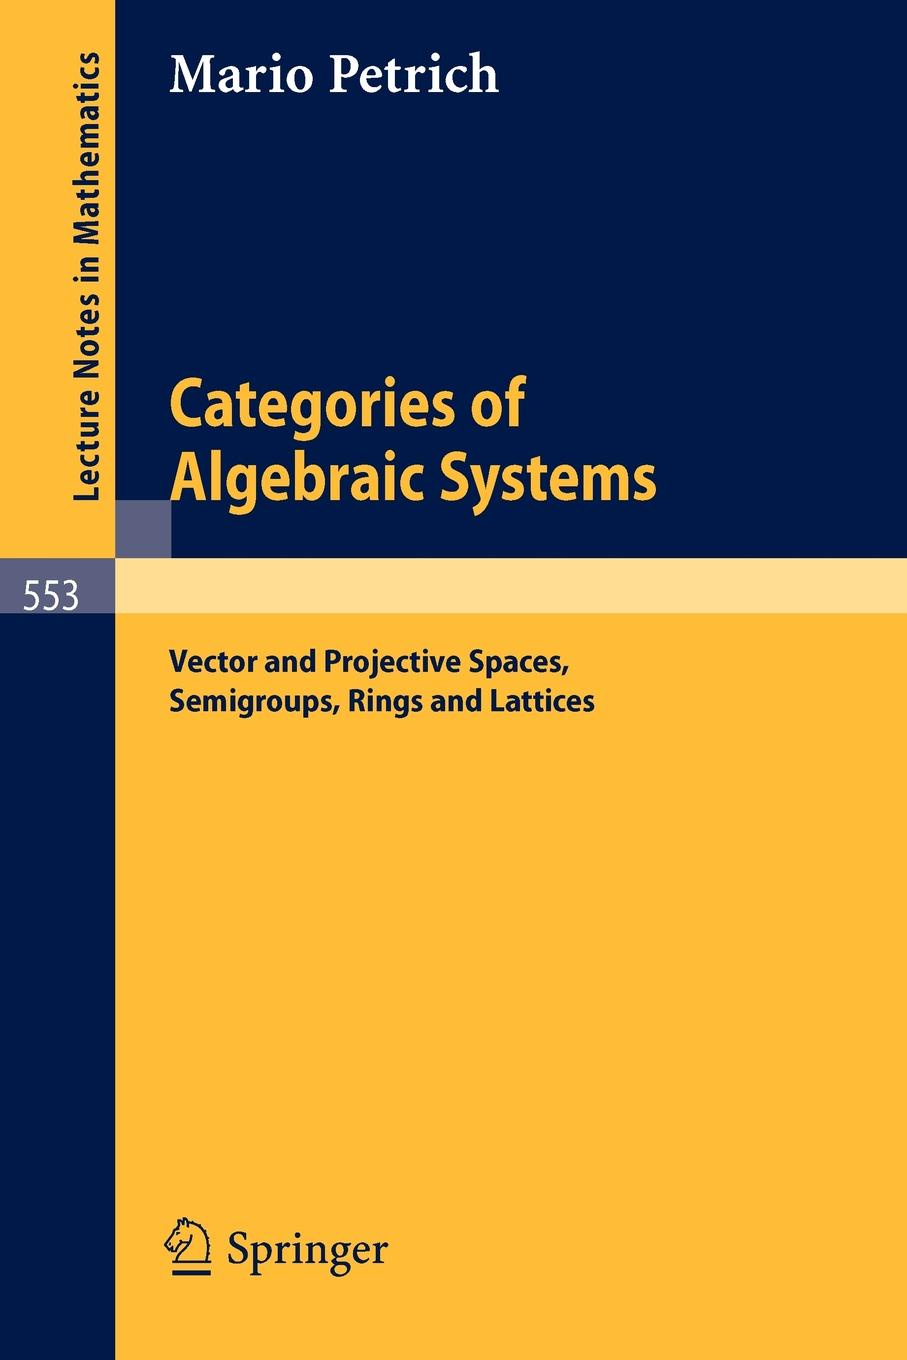 M. Petrich Categories of Algebraic Systems. Vector and Projective Spaces, Semigroups, Rings and Lattices clarke m working spaces